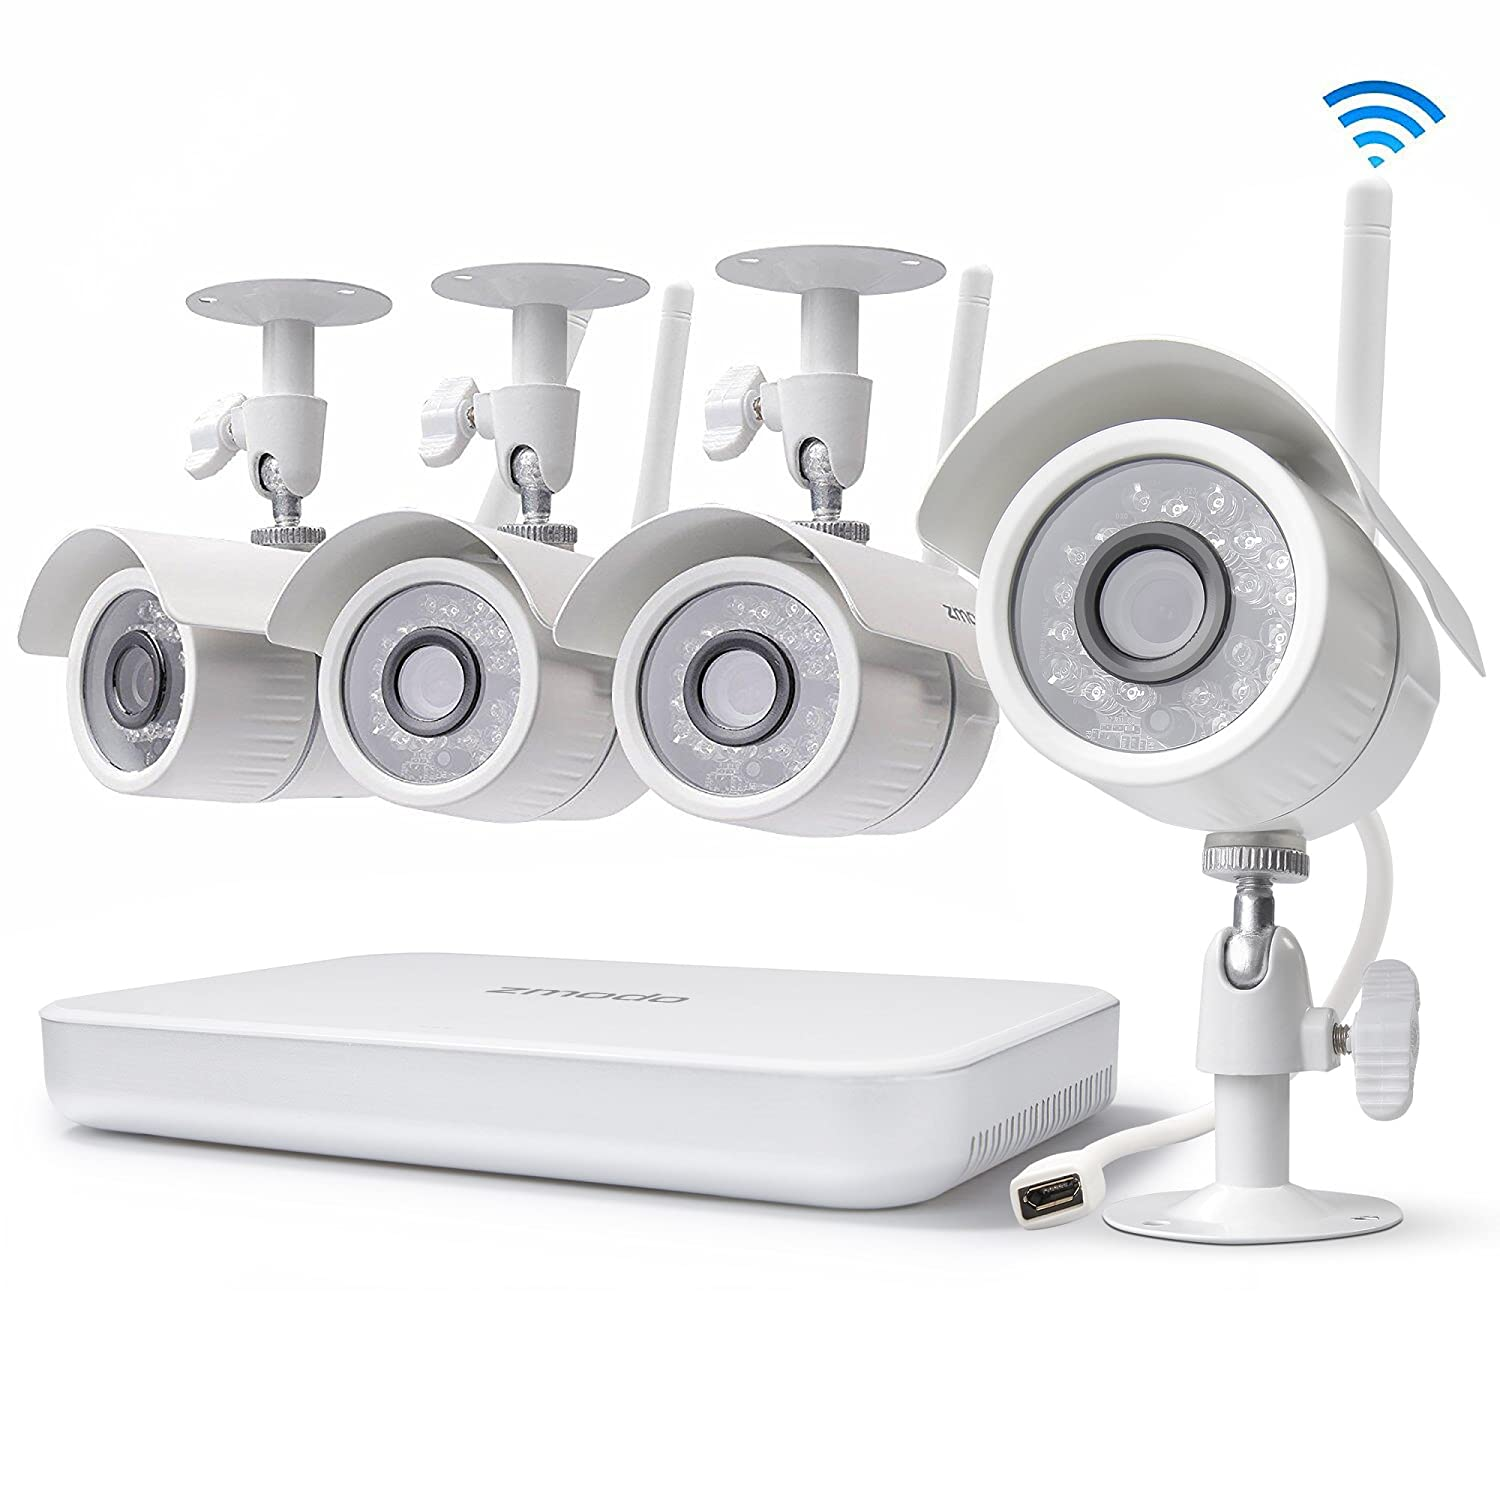 Zmodo 8CH Wireless Security Camera System - 1080P HDMI NVR No Hard Drive, 4  x 720P HD Indoor/Outdoor Wireless Cameras Night Vision - WiFi Easy